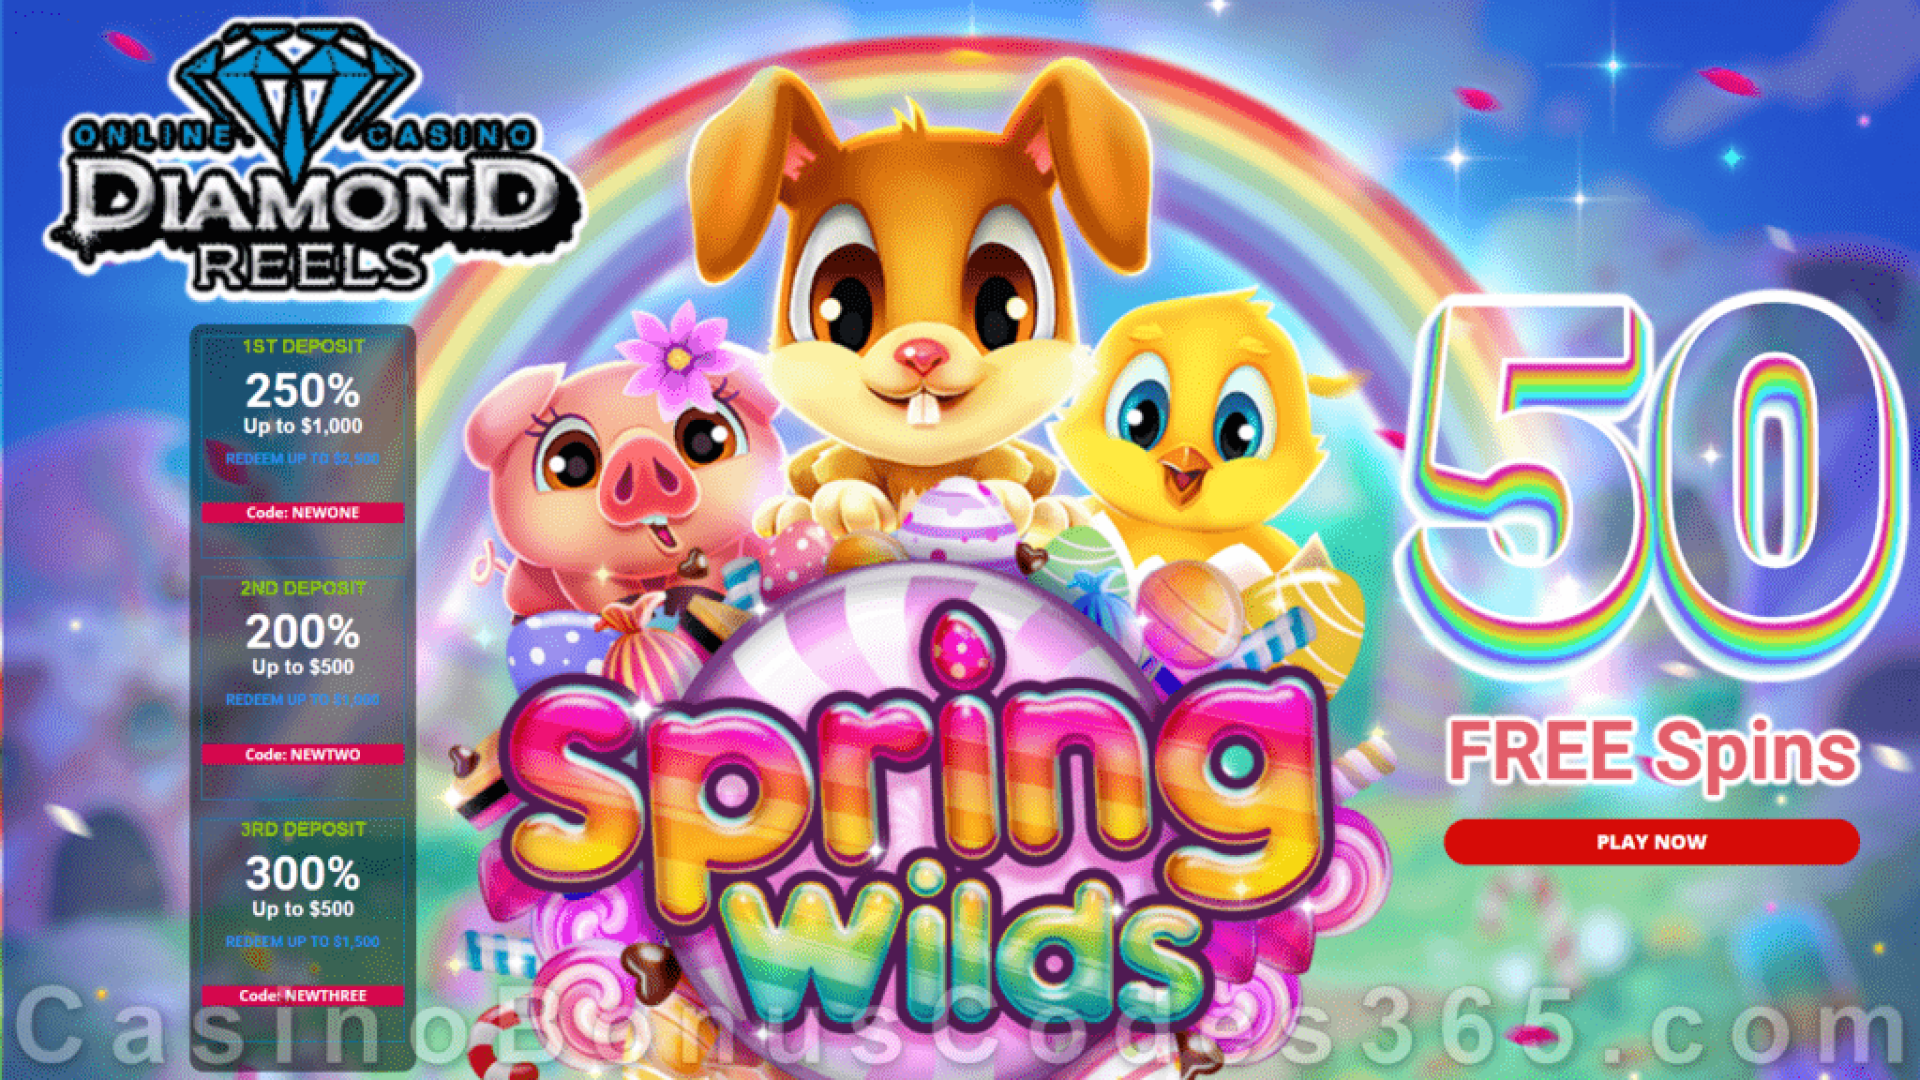 Diamond Reels Casino 50 FREE Spring Wilds Spins New RTG Game Special Promo